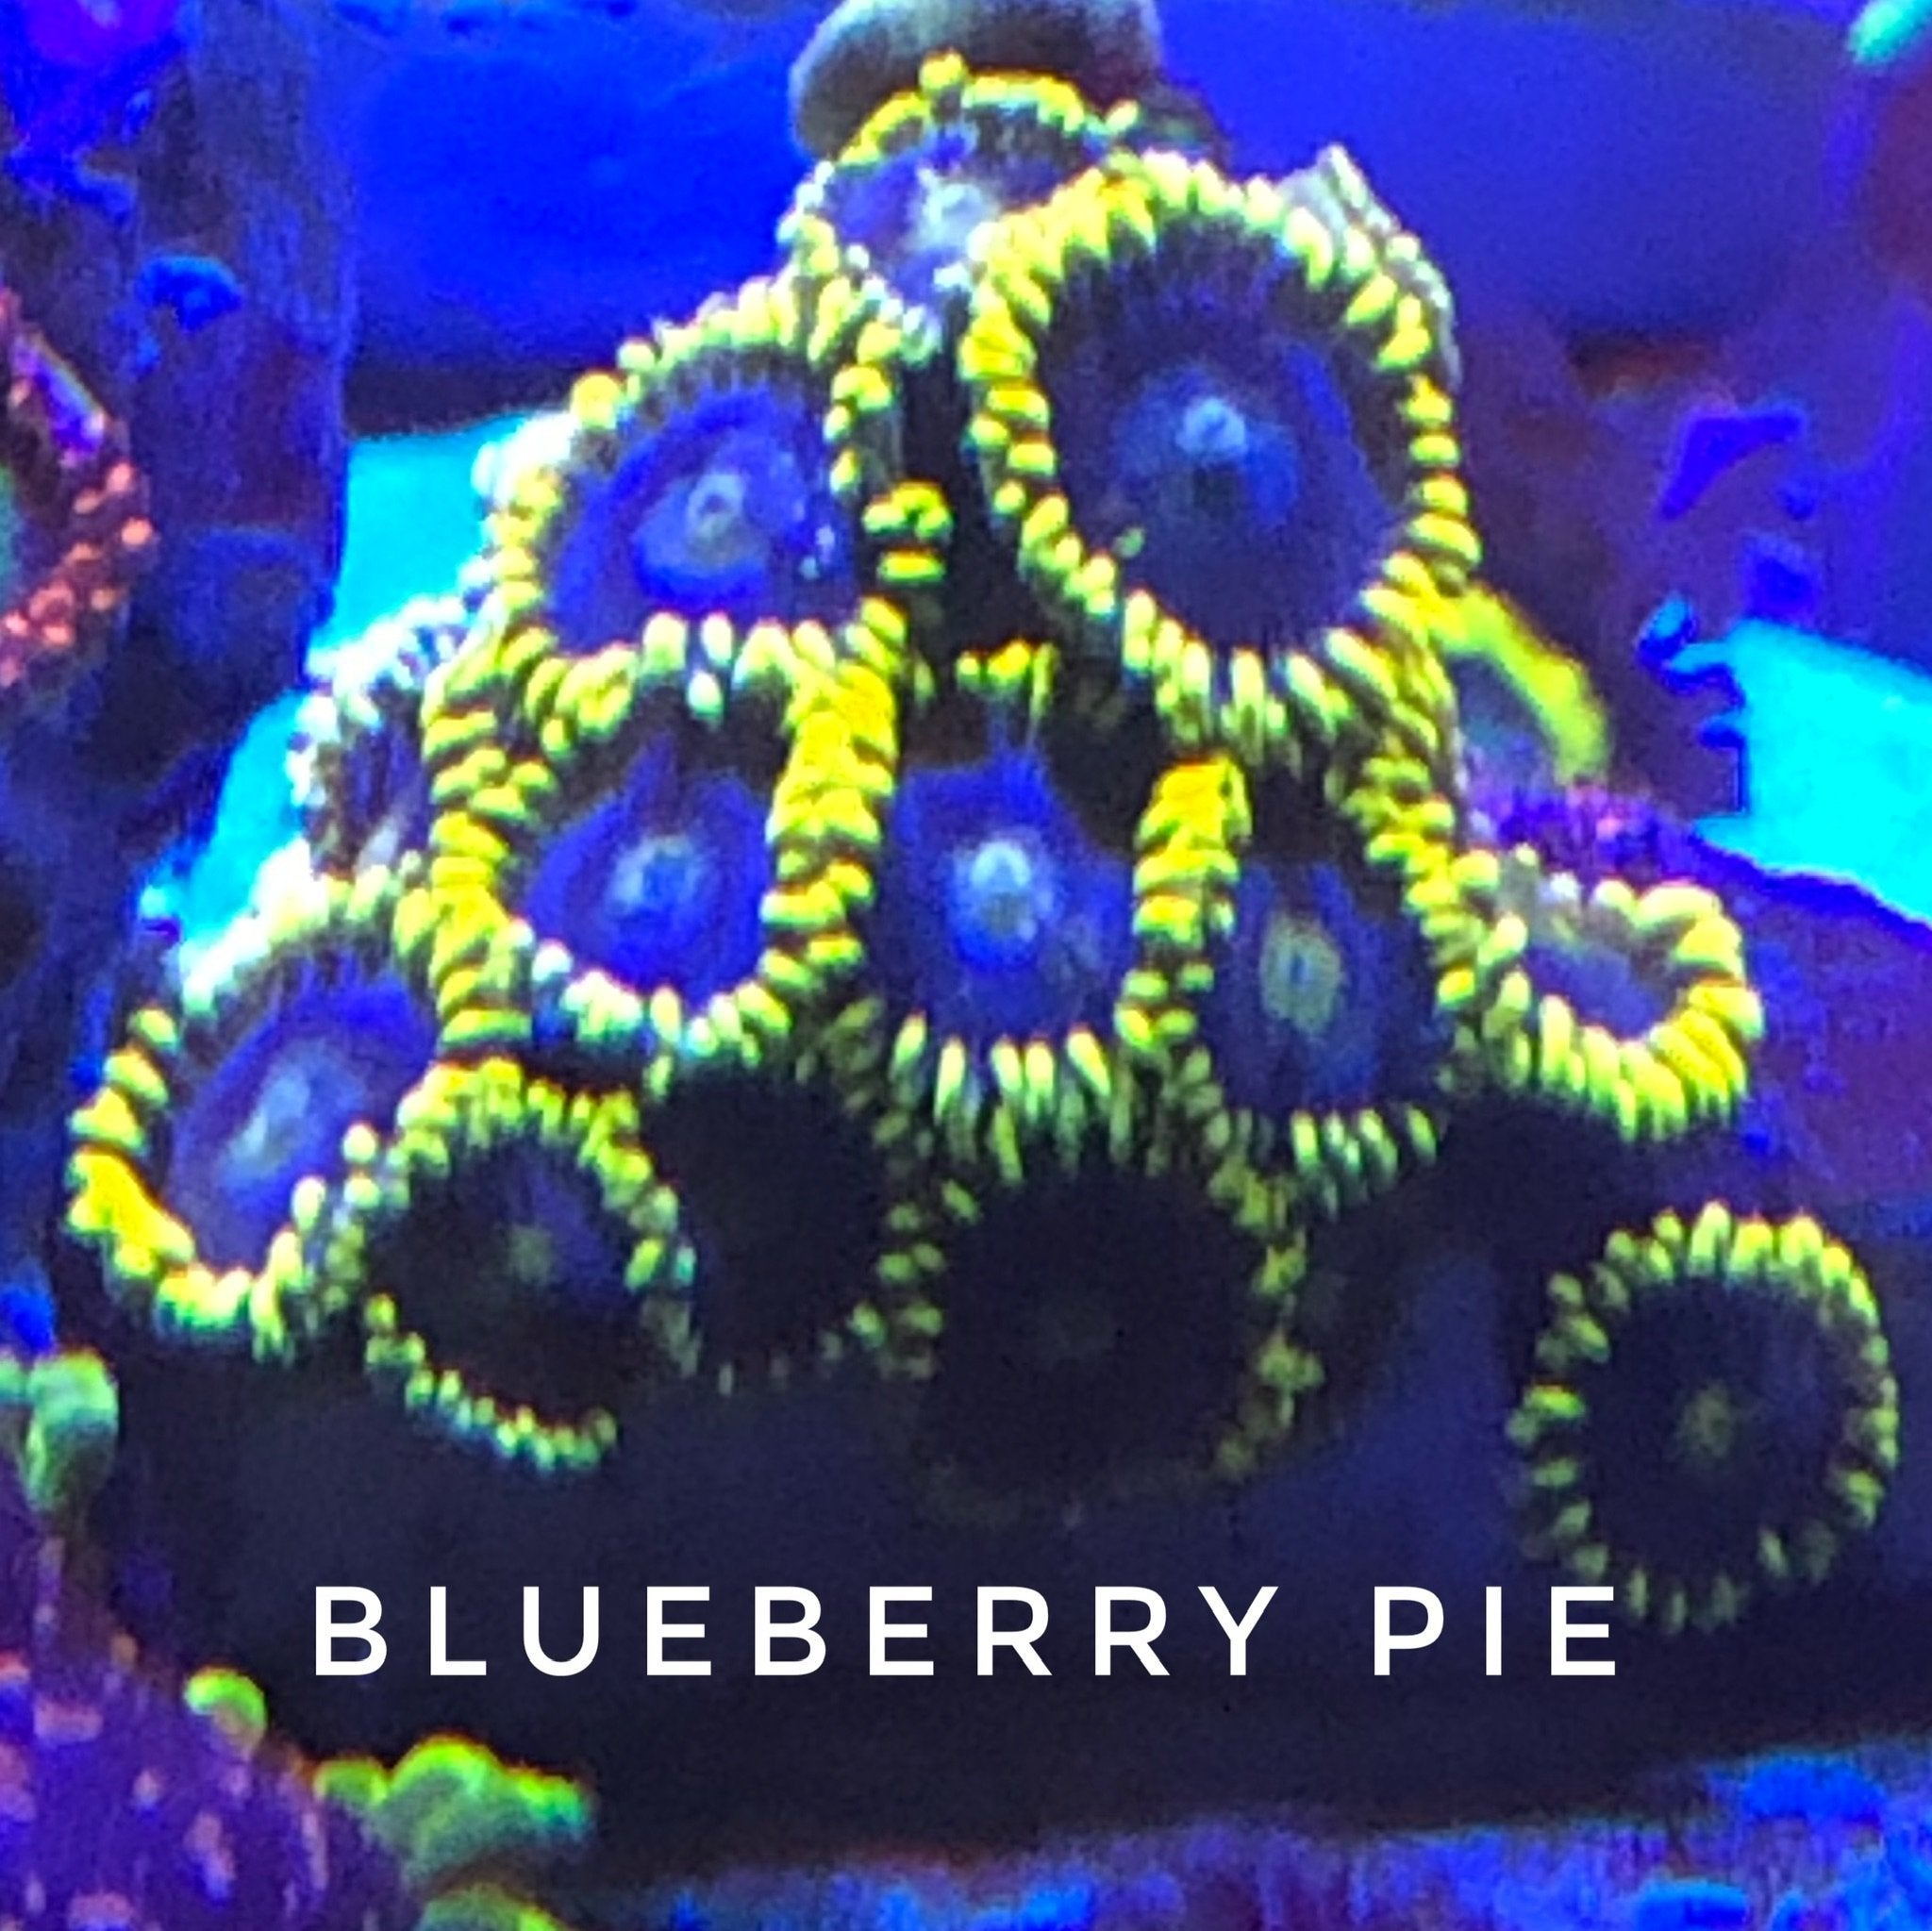 Blueberry Pie/Blueberry Field